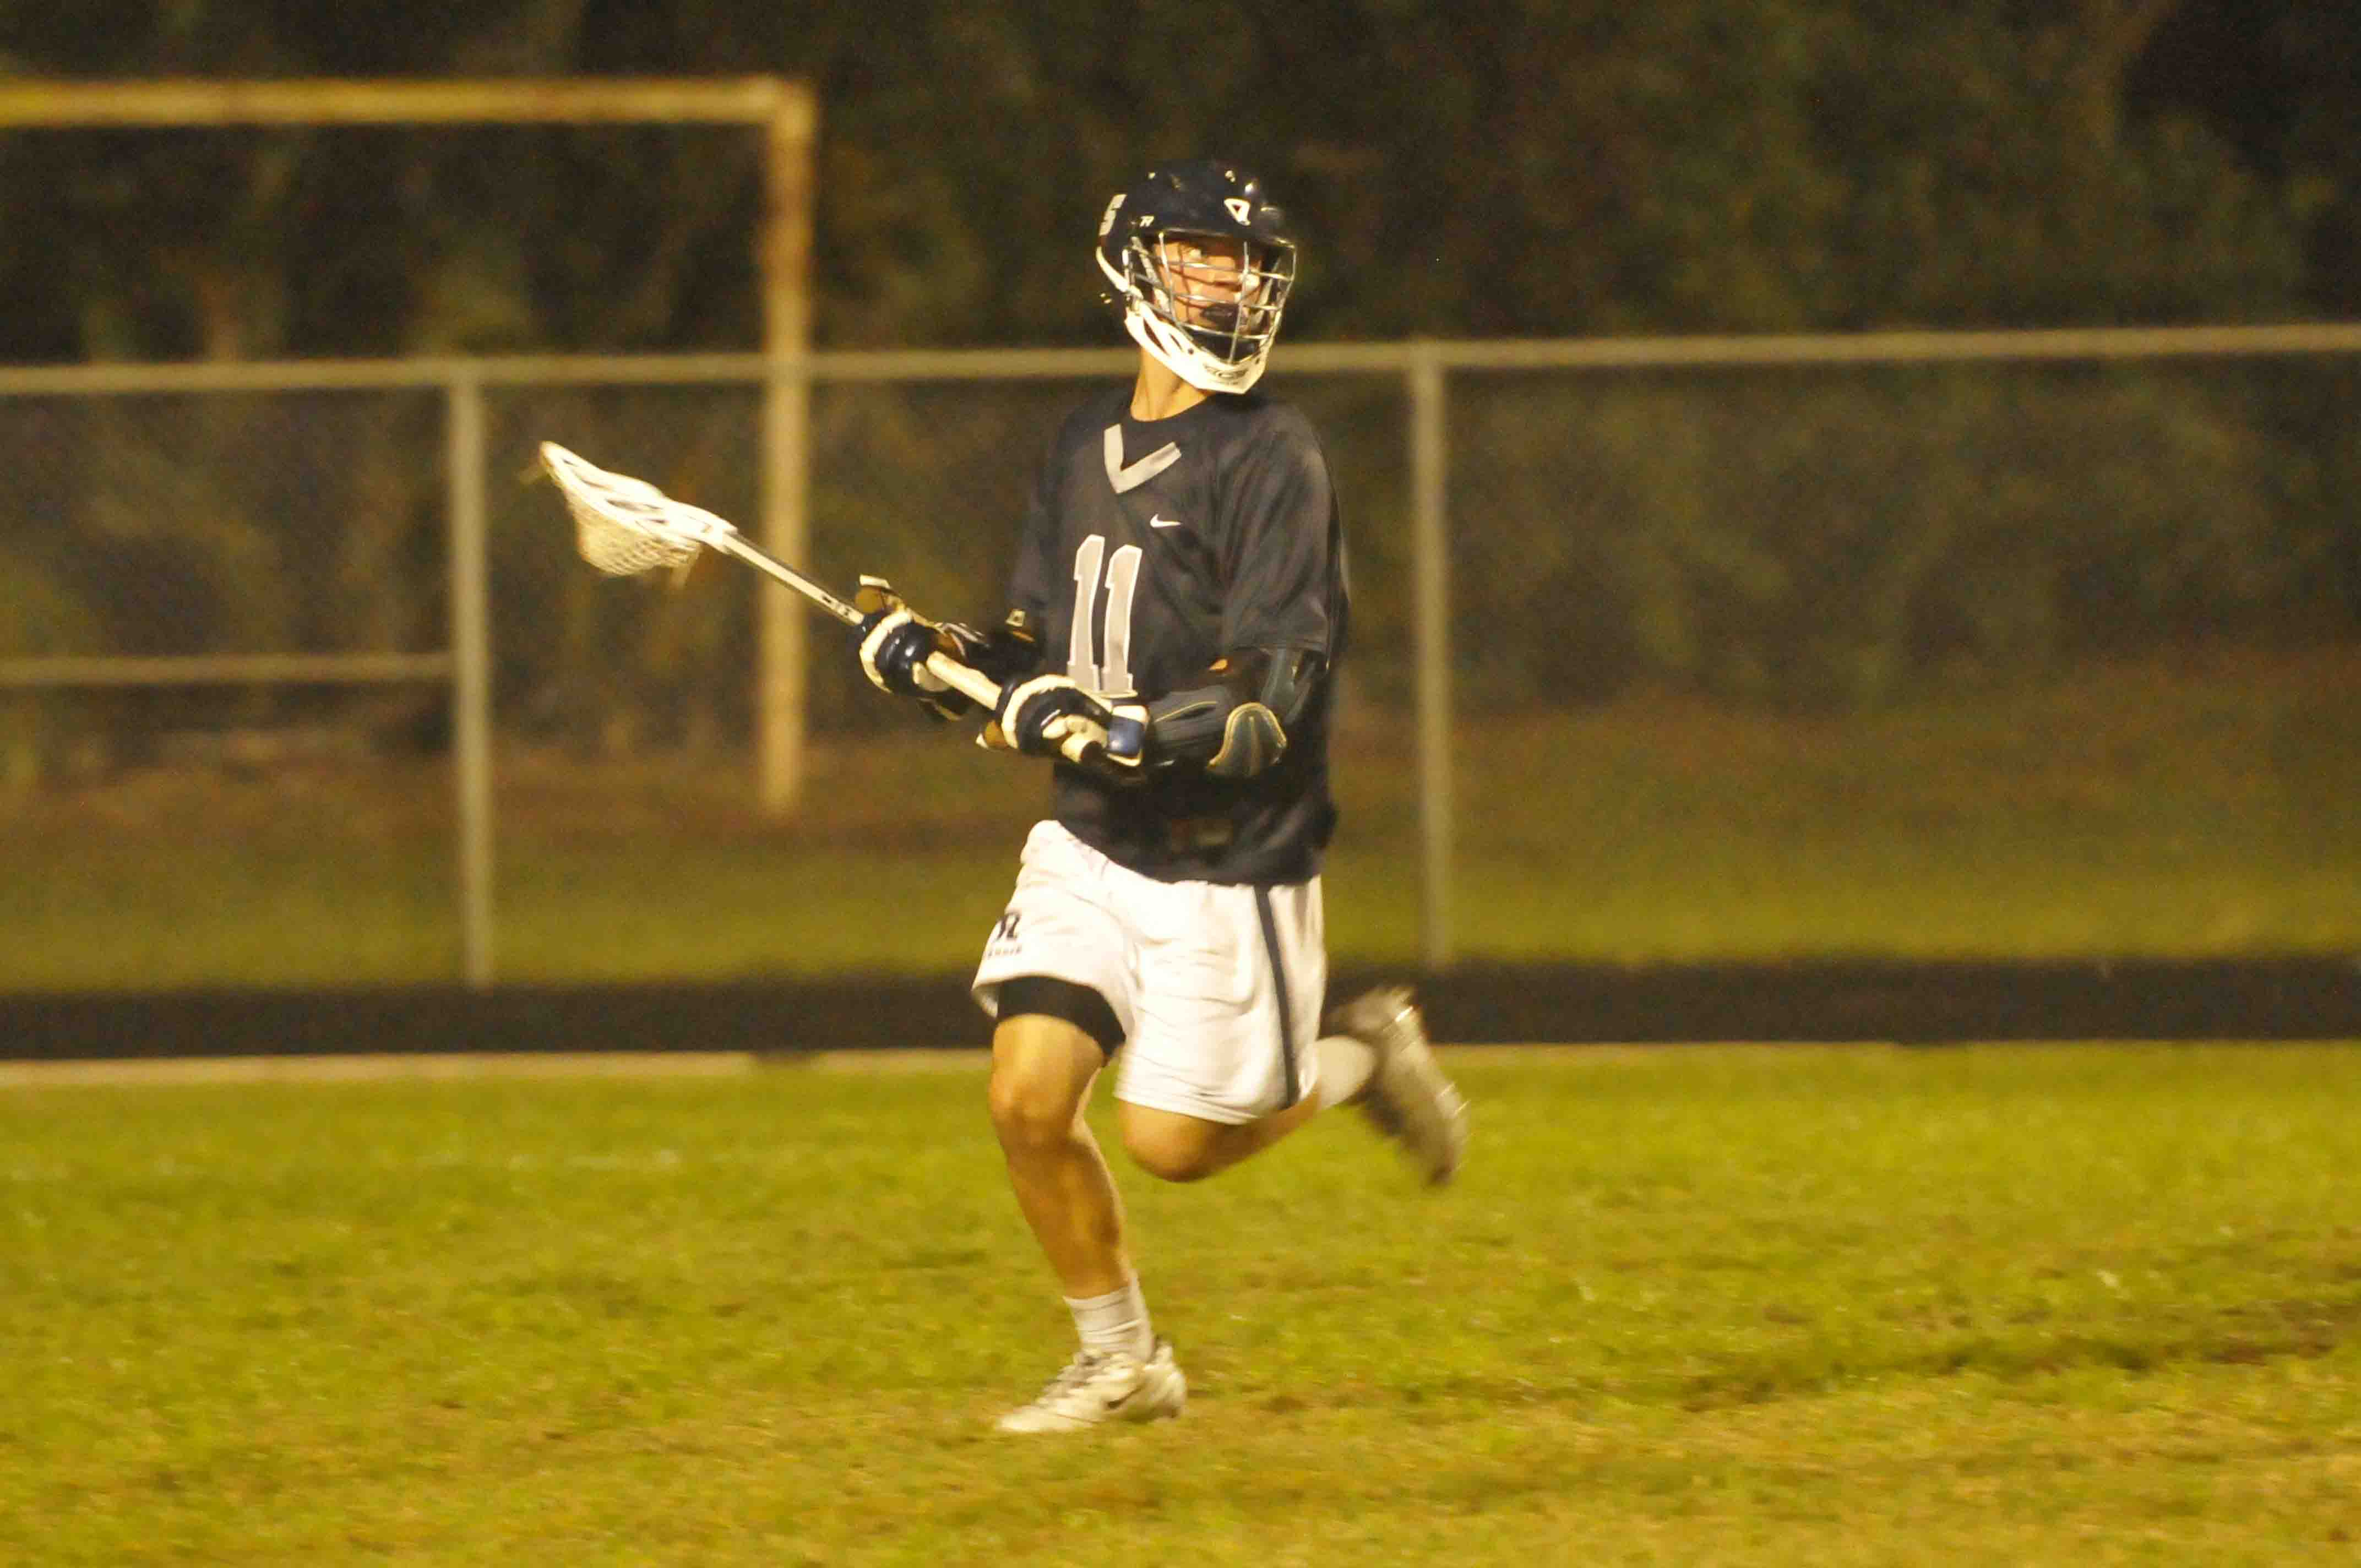 River Wins The 'War For Four' – Holds Off West Boca Rally 13-12 for Last District Playoff Slot